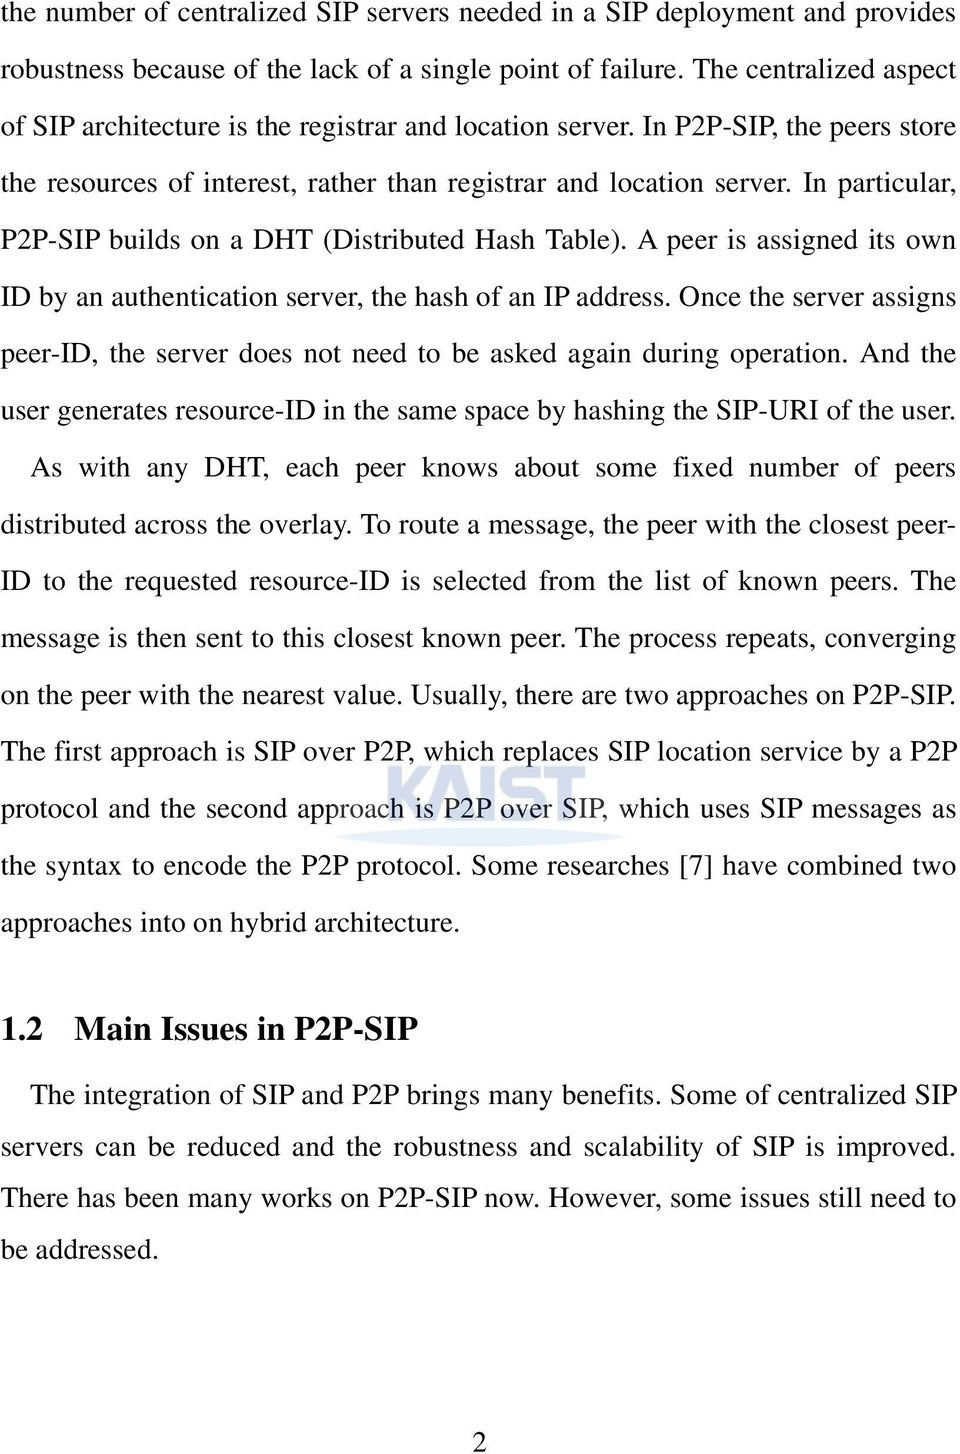 In particular, P2P-SIP builds on a DHT (Distributed Hash Table). A peer is assigned its own ID by an authentication server, the hash of an IP address.